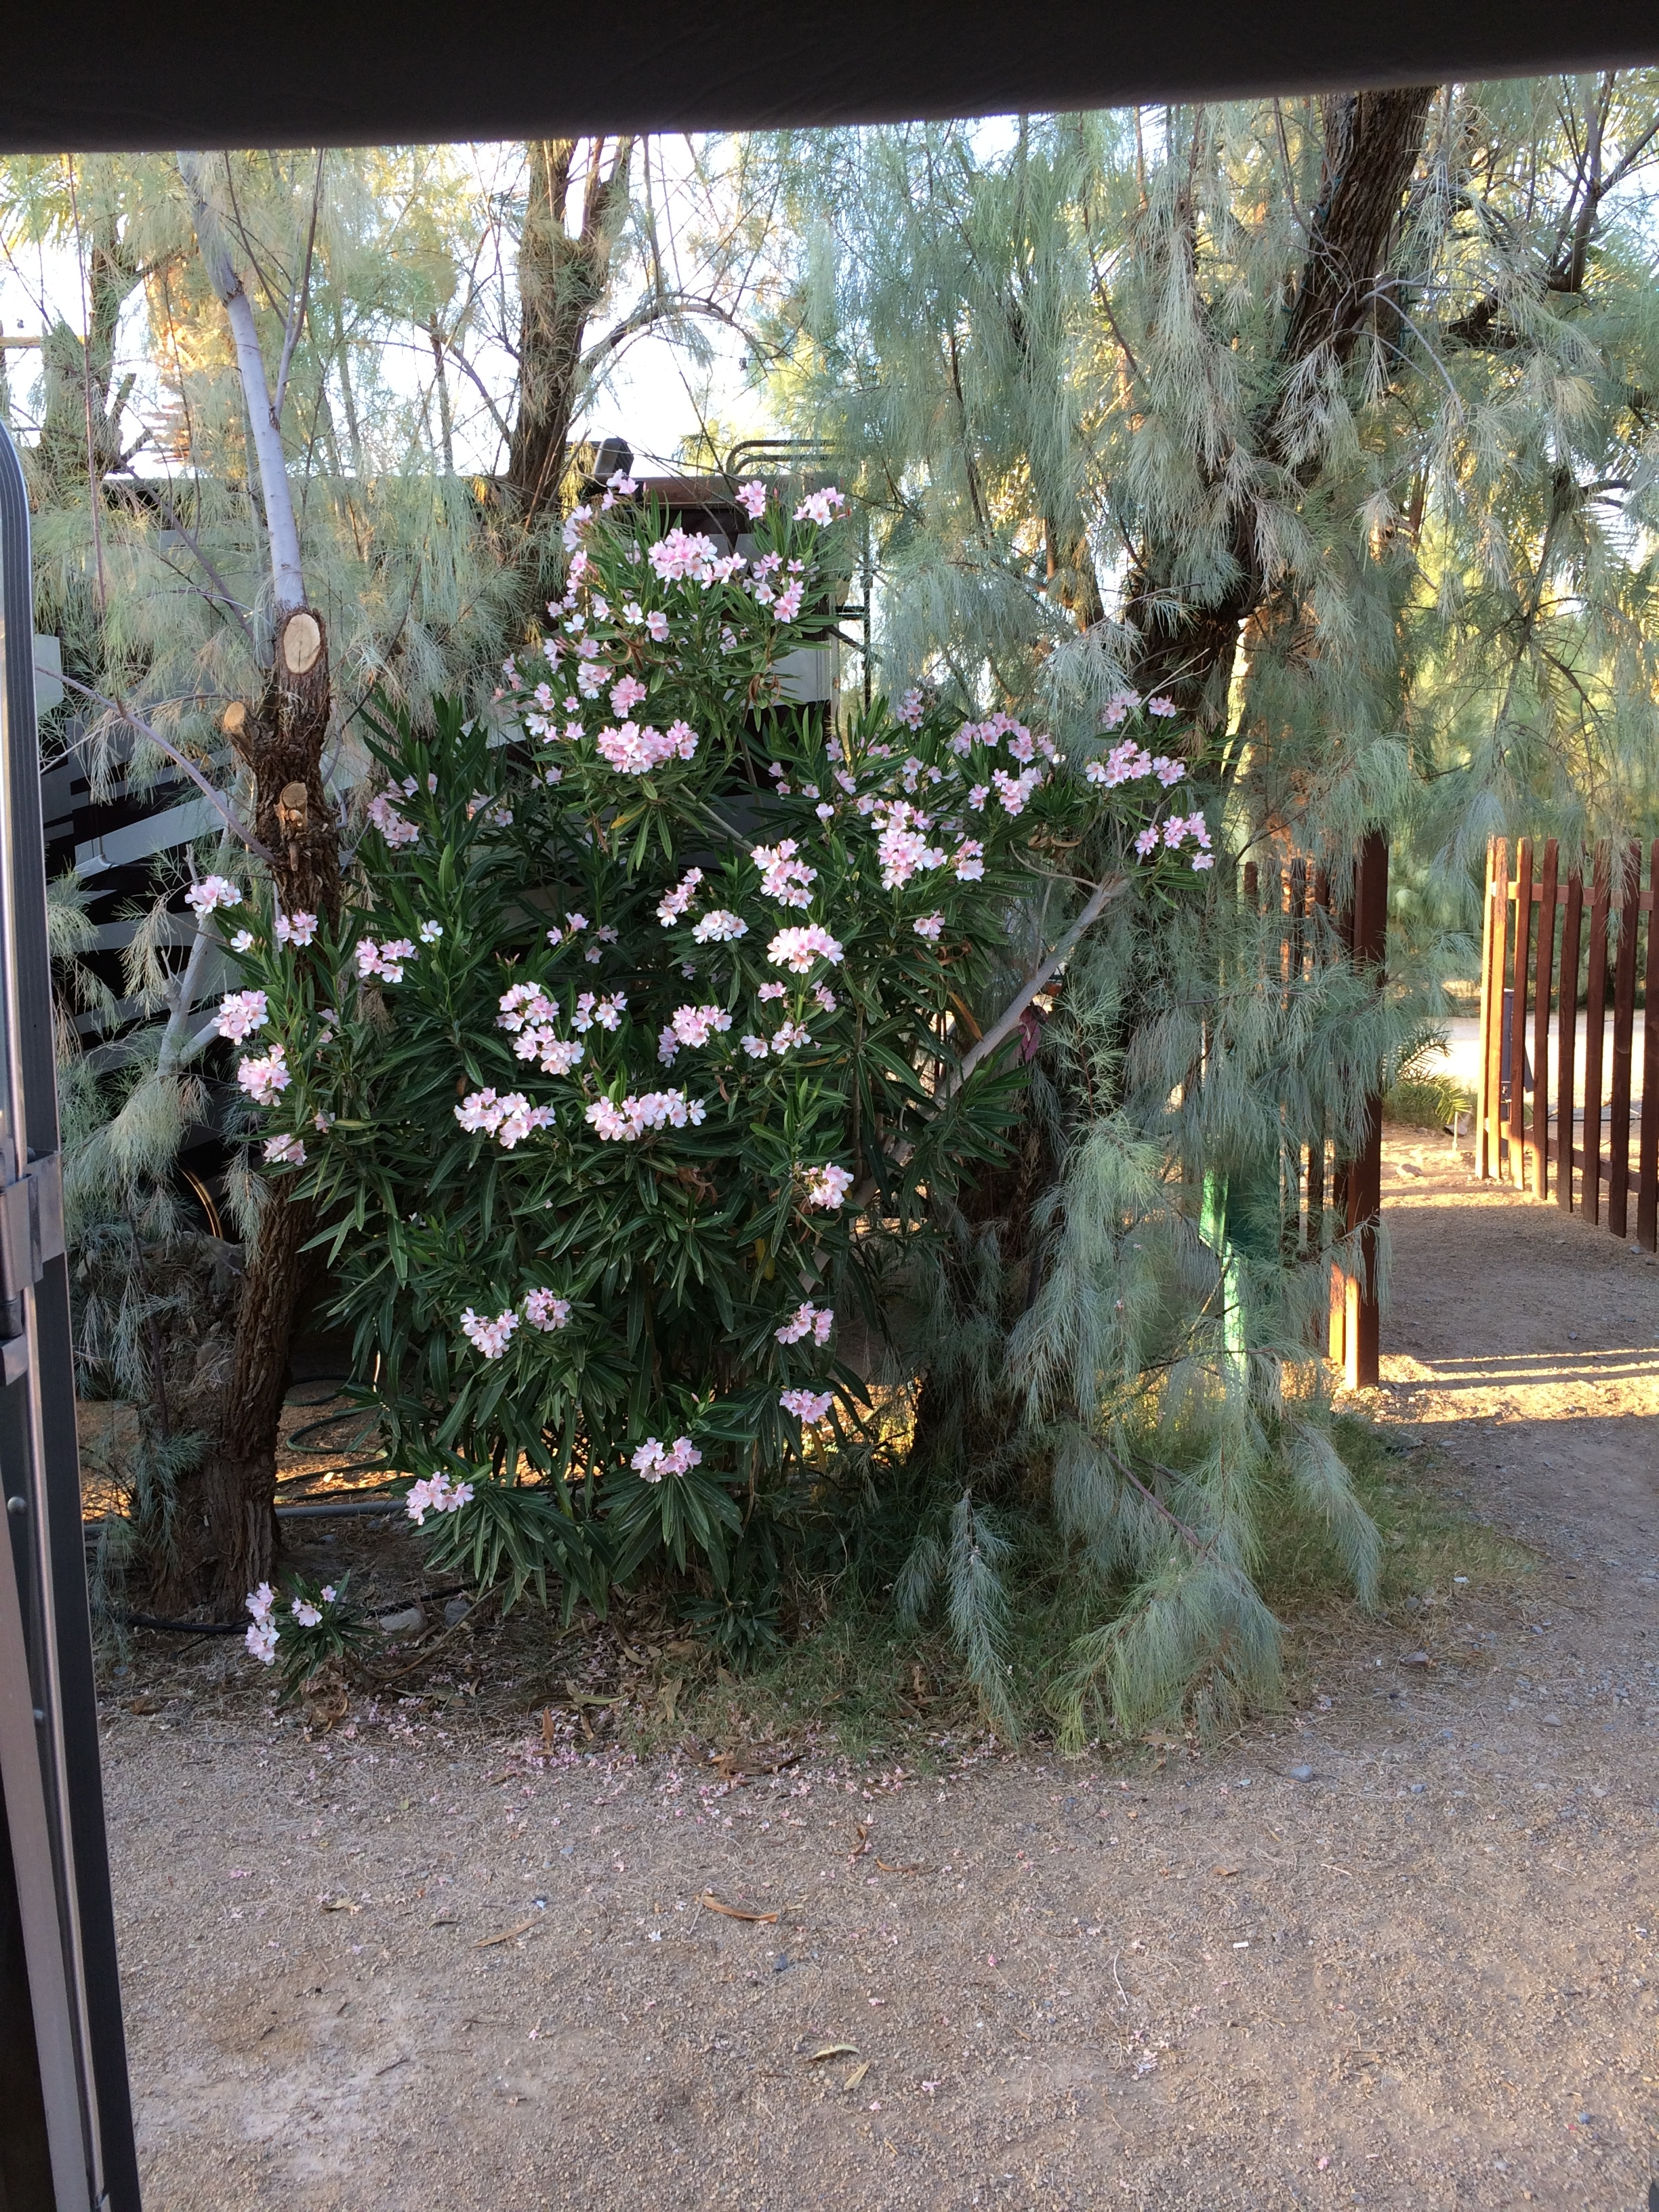 The view out my door at Furnace Creek Resort RV Park.